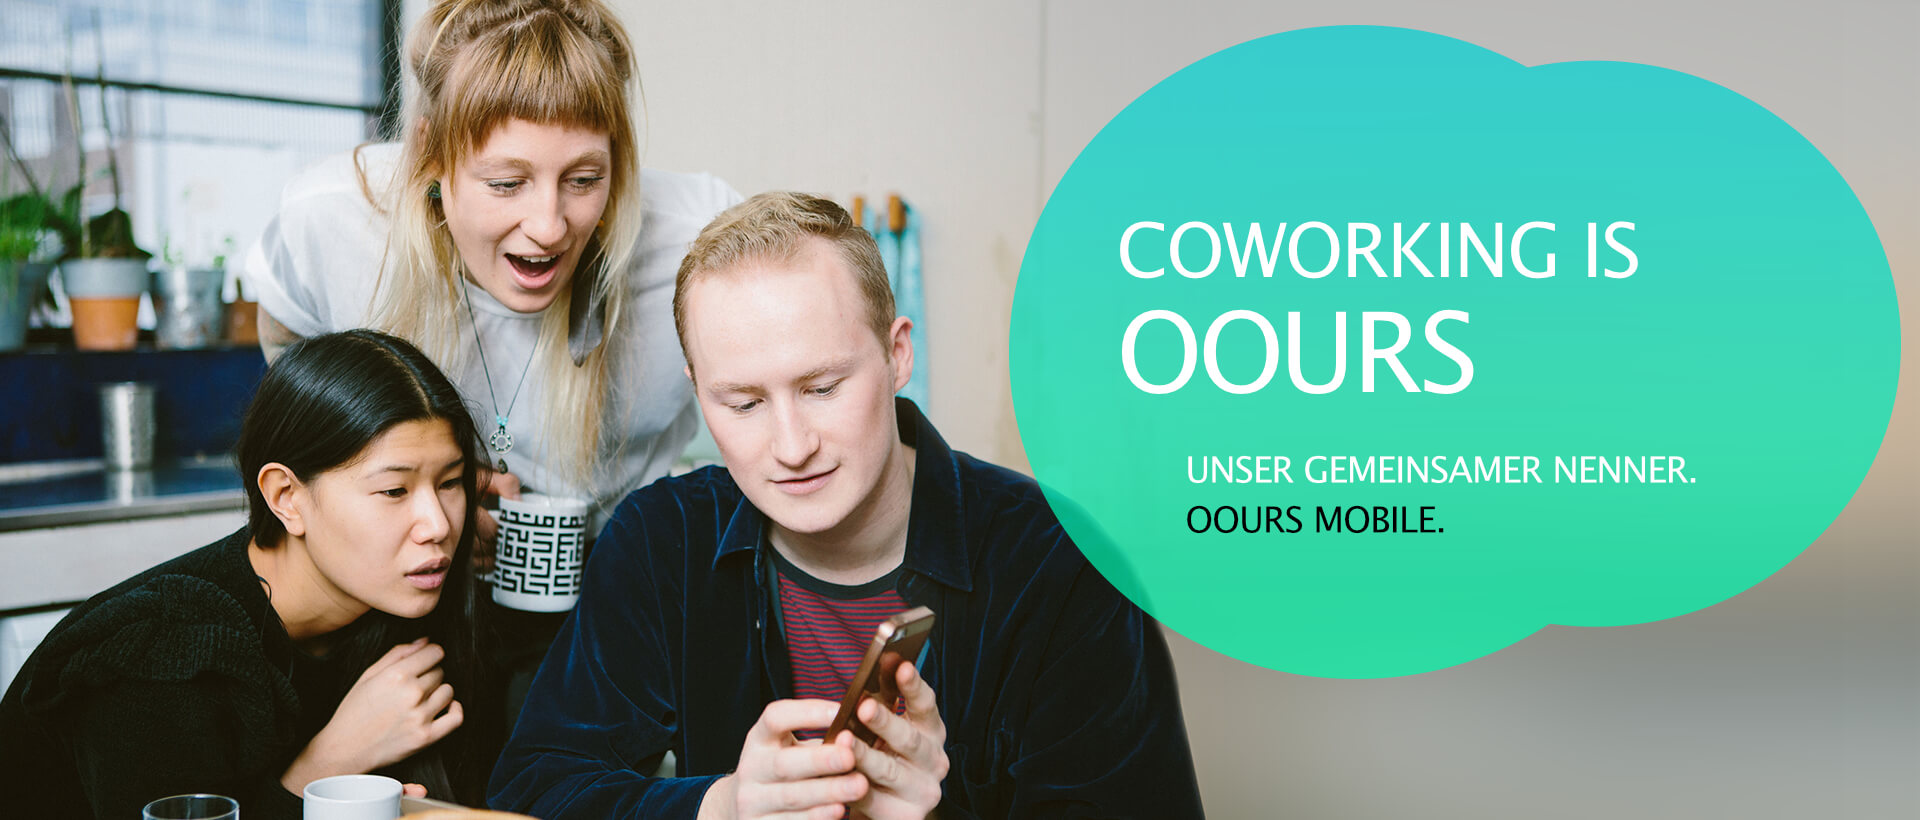 OOURS mobile